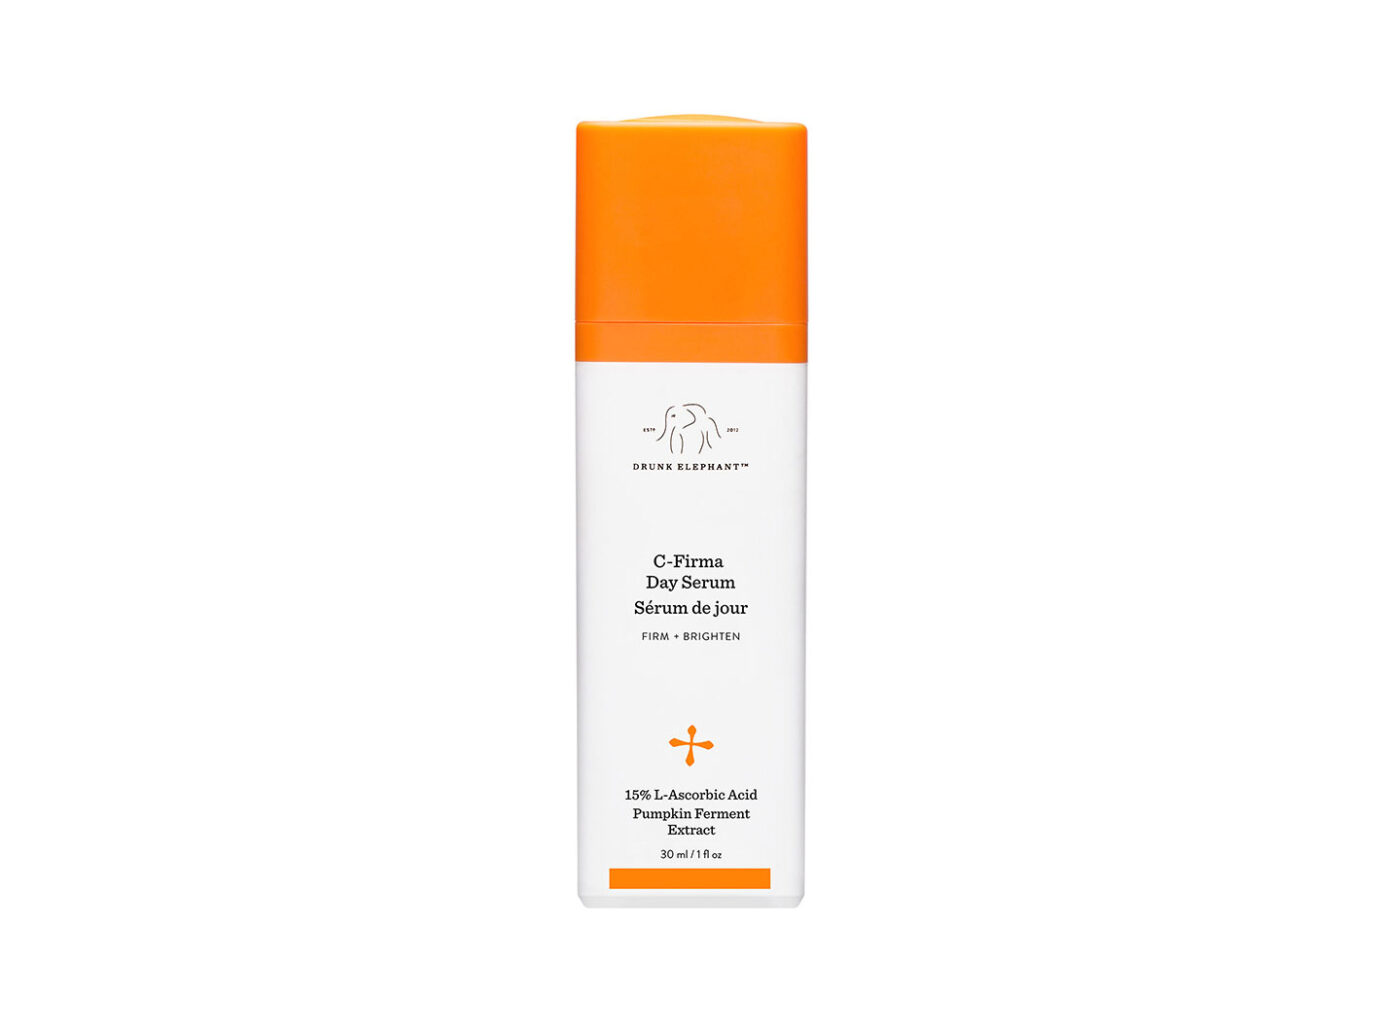 Drunk Elephant C-Firma™ Vitamin C Day Serum